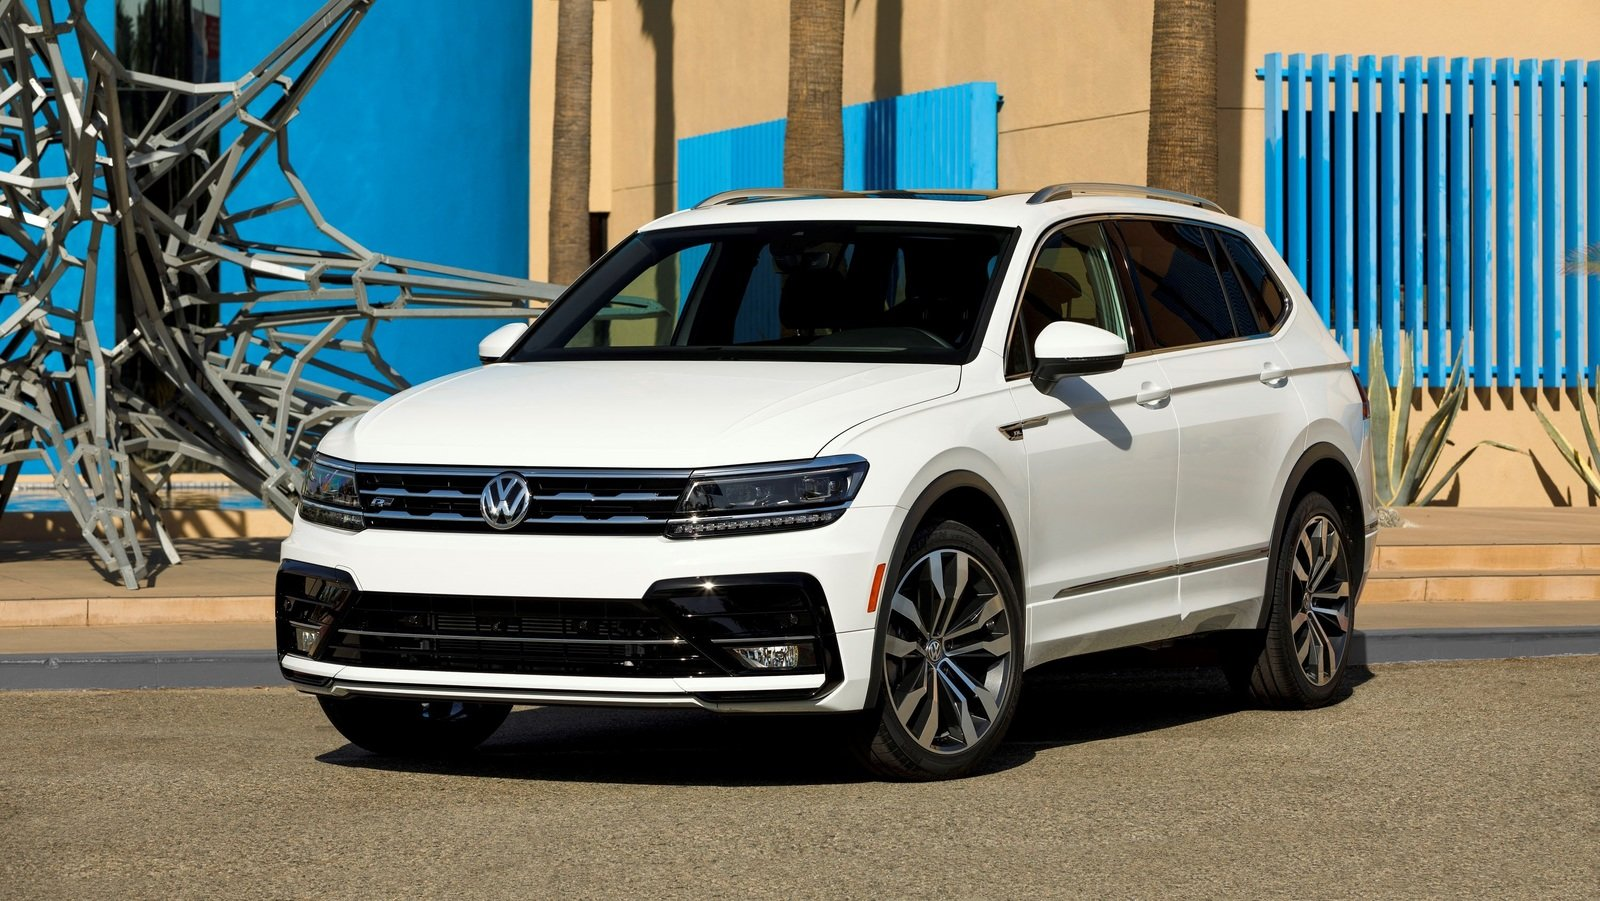 2018 volkswagen tiguan r line review top speed. Black Bedroom Furniture Sets. Home Design Ideas